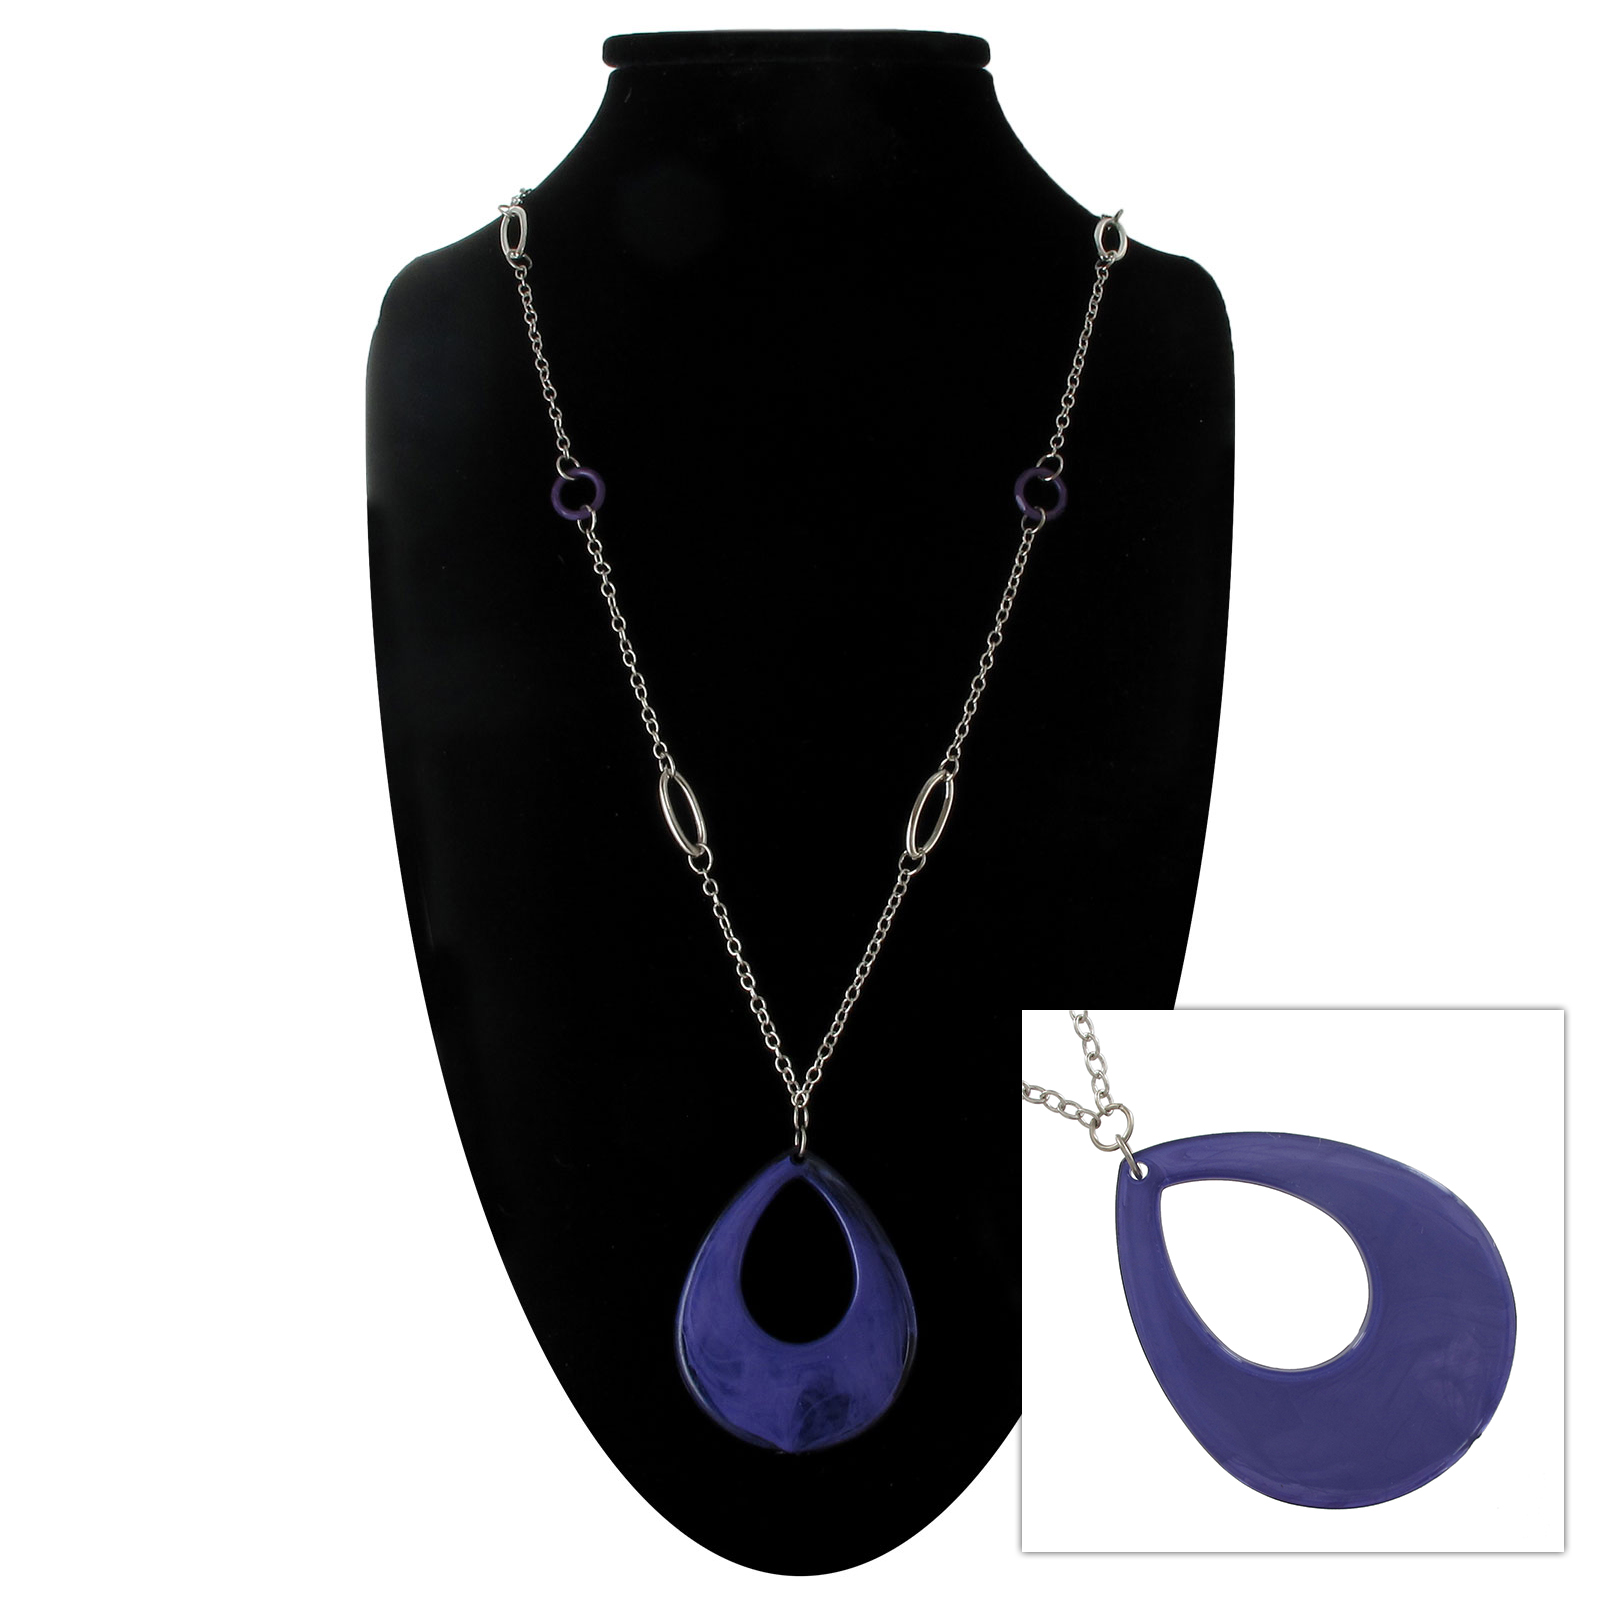 Pendant Necklace New Silver Tone Purple Drop Bead Chain